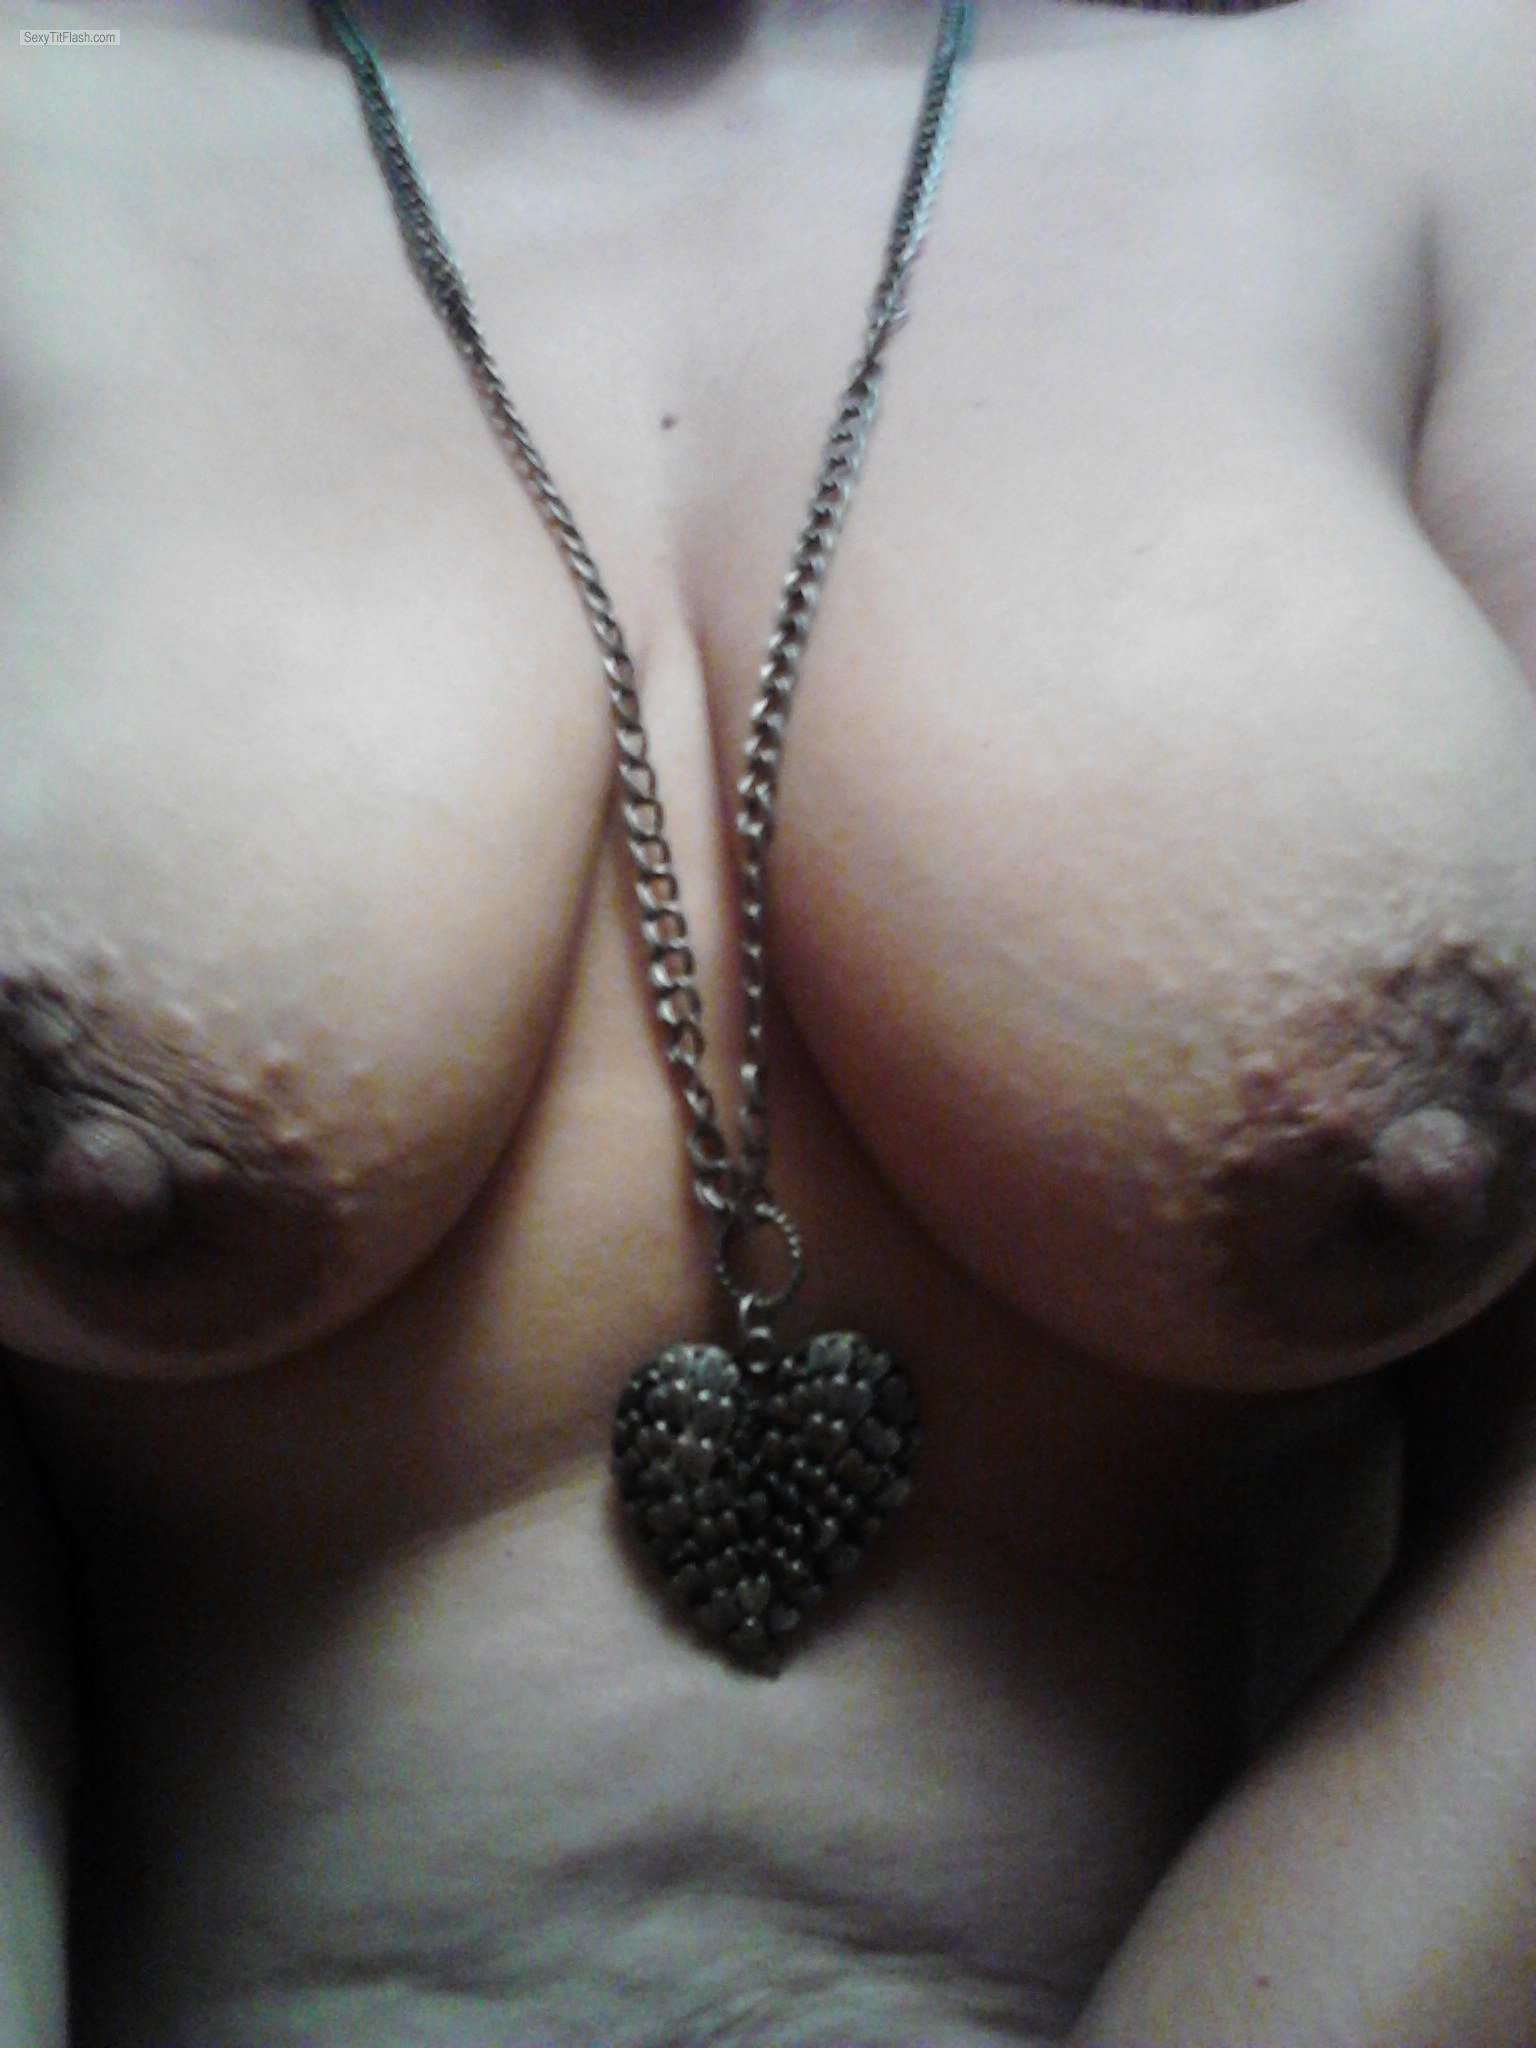 Tit Flash: Wife's Big Tits (Selfie) - Roxy1976 from United States